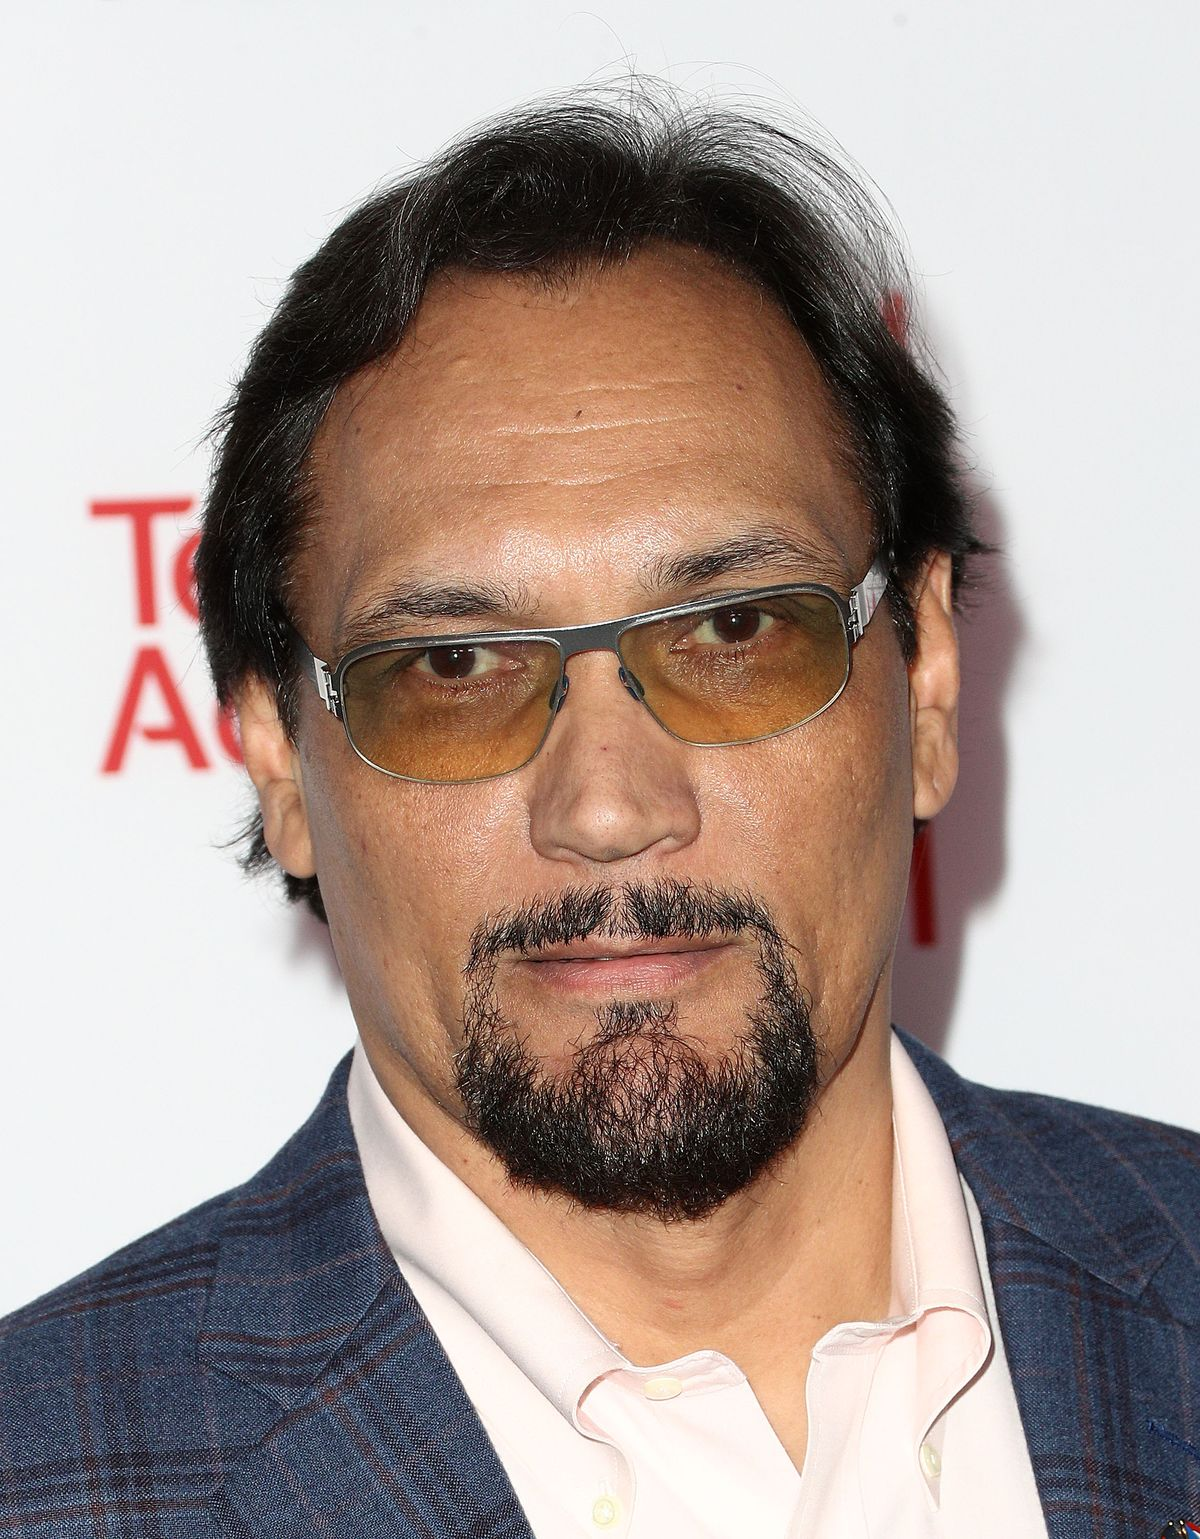 Jimmy Smits at the Television Academy's 24th Hall of Fame Ceremony on November 15, 2017, in North Hollywood, California | Photo: Frederick M. Brown/Getty Images